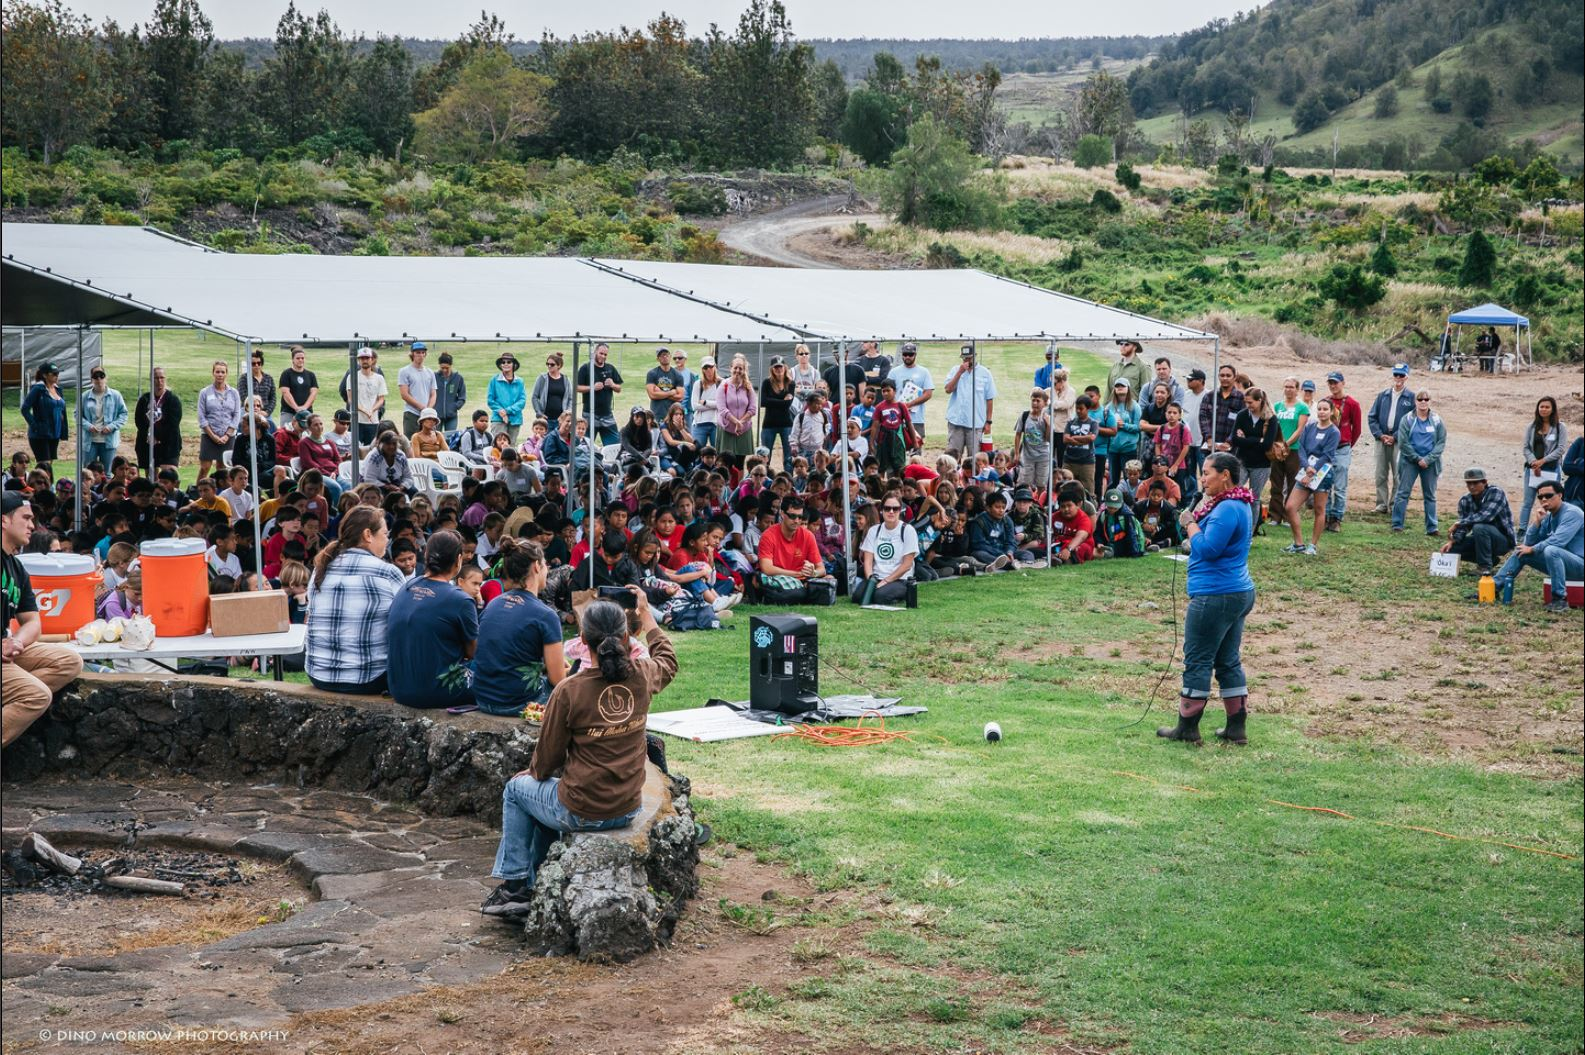 Photo: a group of 250 4th grade students sit calmly under tents as FS personnel innitiate the biocultural blitz.